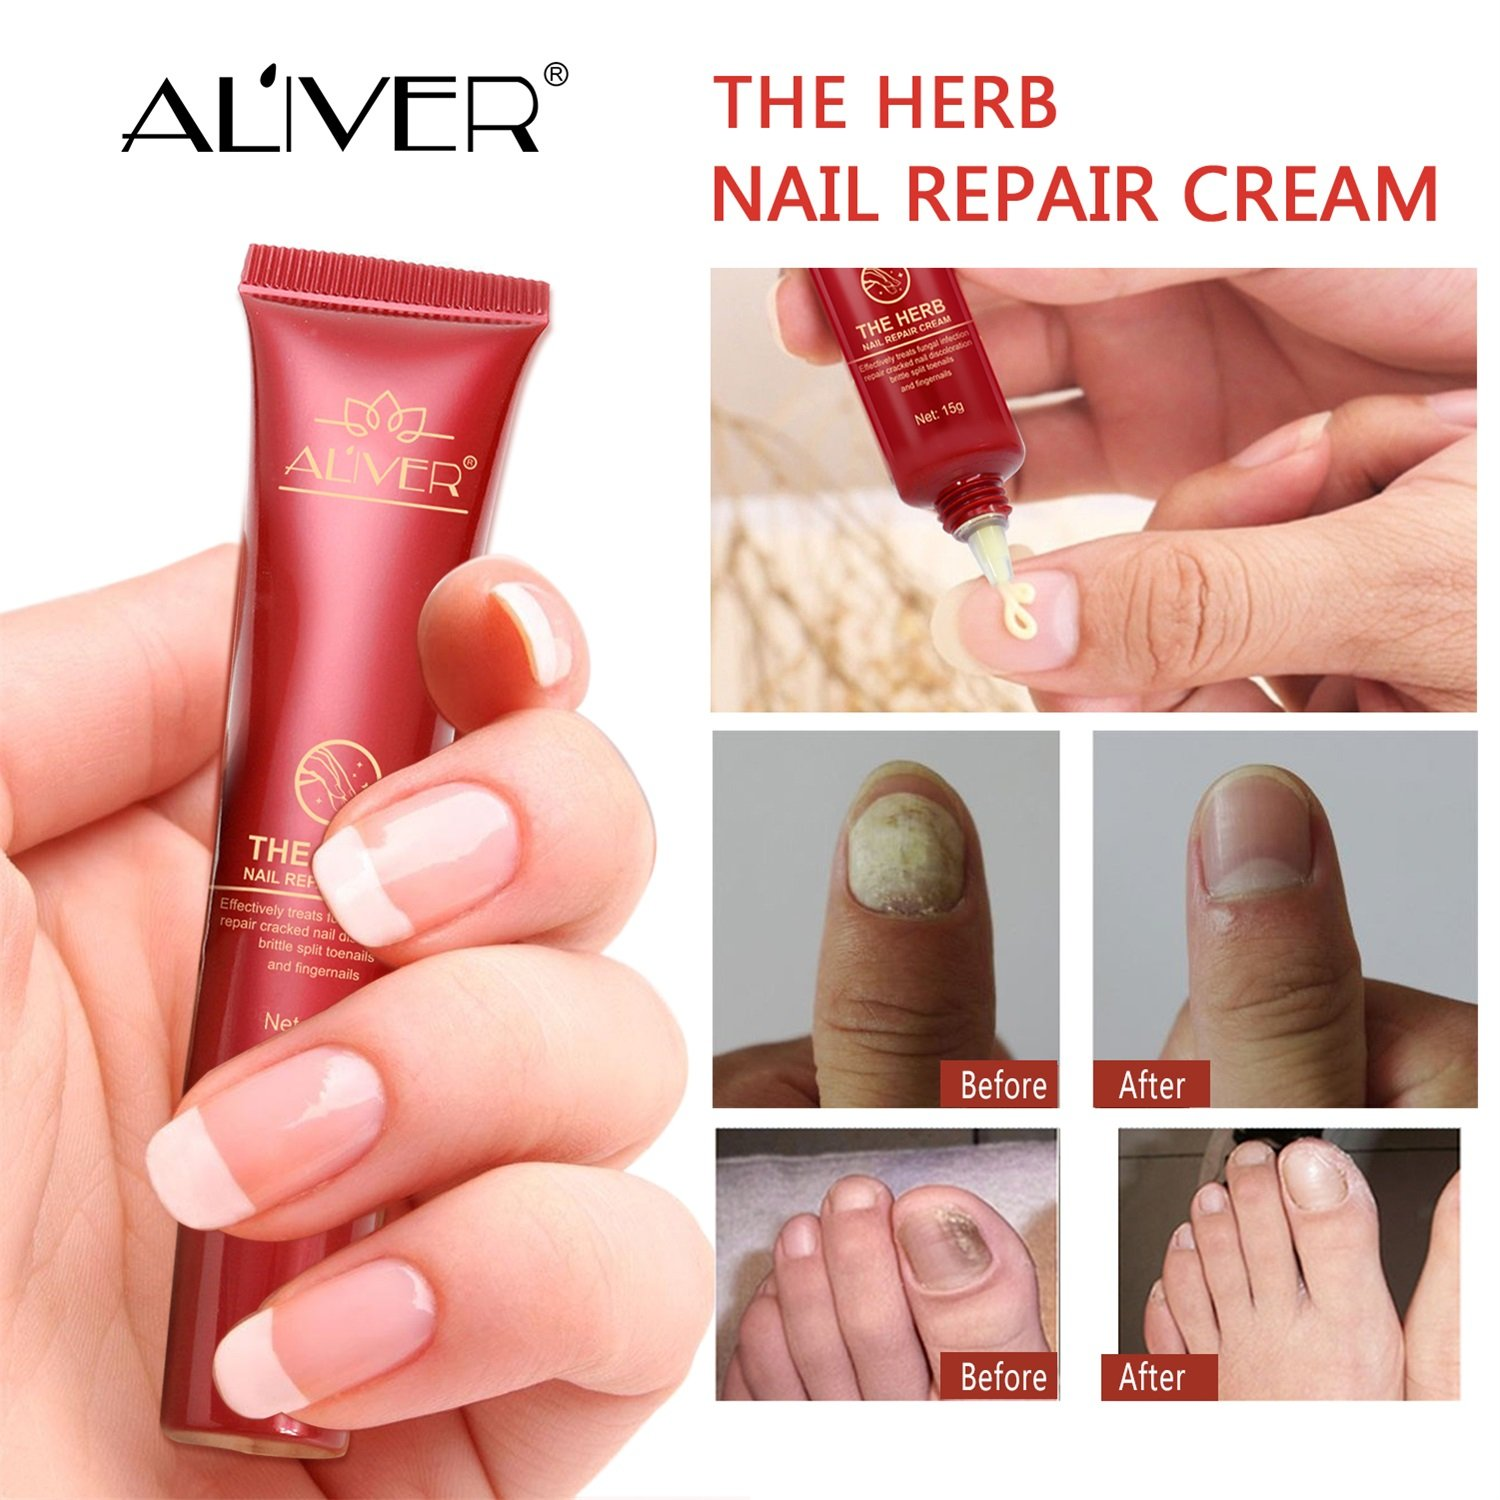 Nail Fungal Treatment, Aliver The Herb Foot Nail Repair Cream Protector, Nail Care Treatment of Anti-Fungal Cream, Effective Against Nail Fungus, Restores the Healthy Appearance of Nails (15g) by ALIVER (Image #2)